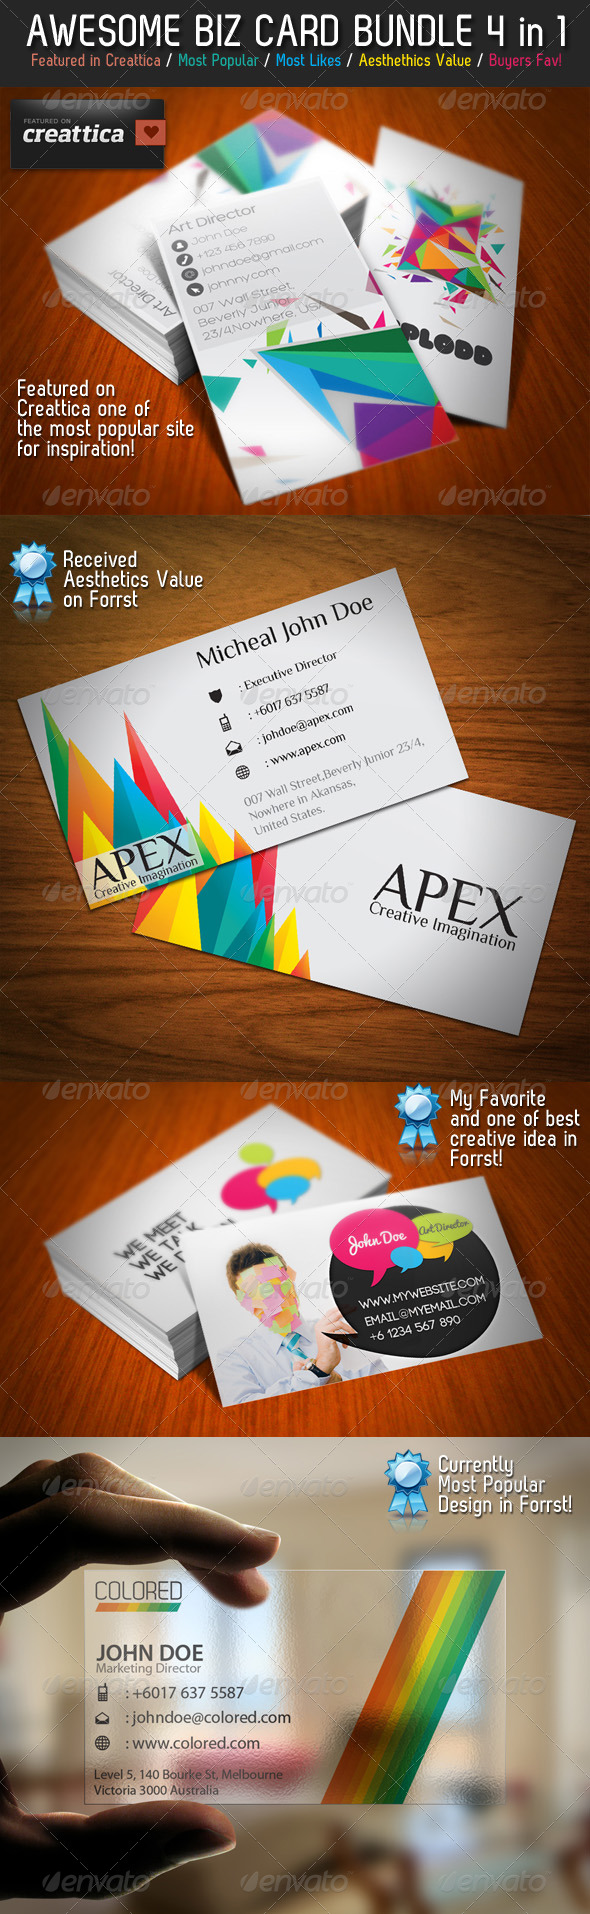 Colorful Business Card Bundle 4 in 1